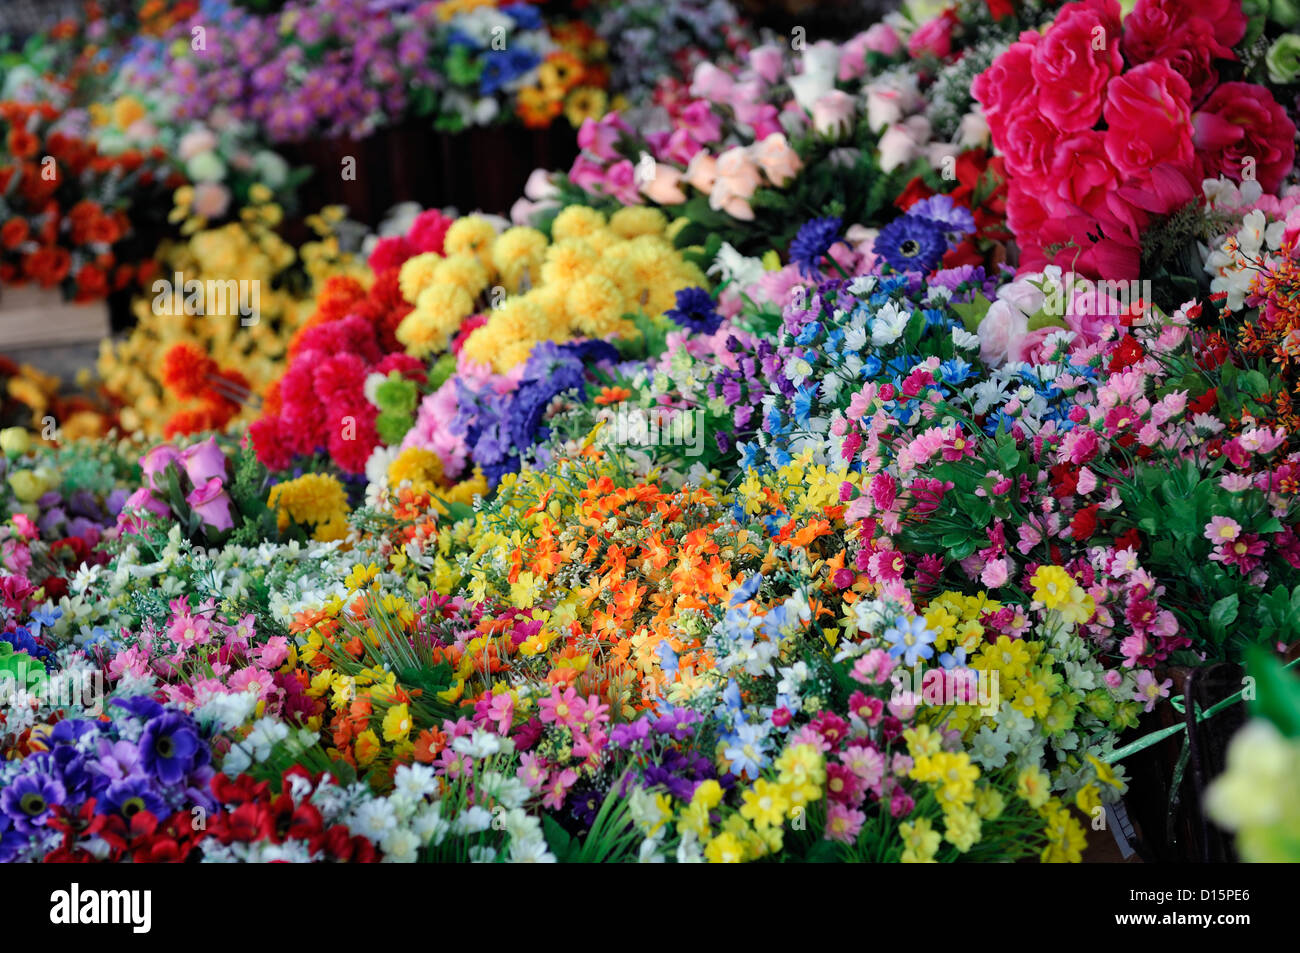 plastic multi coloured colored flowers on sale stand market stall vendor chatuchak weekend market bangkok thailand - Stock Image